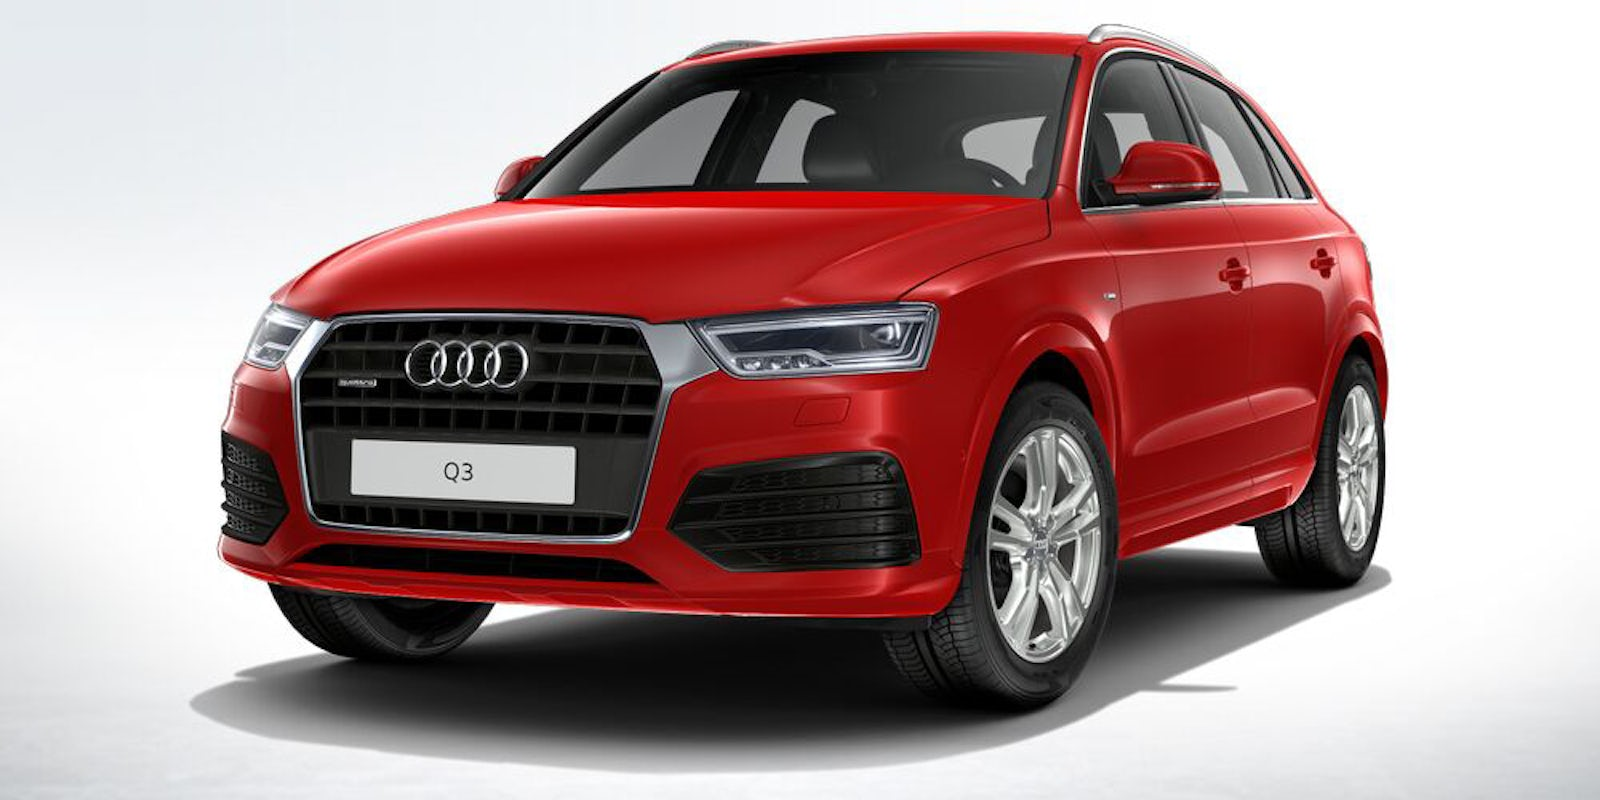 Audi Q Colours Guide And Prices Carwow - Audi car red